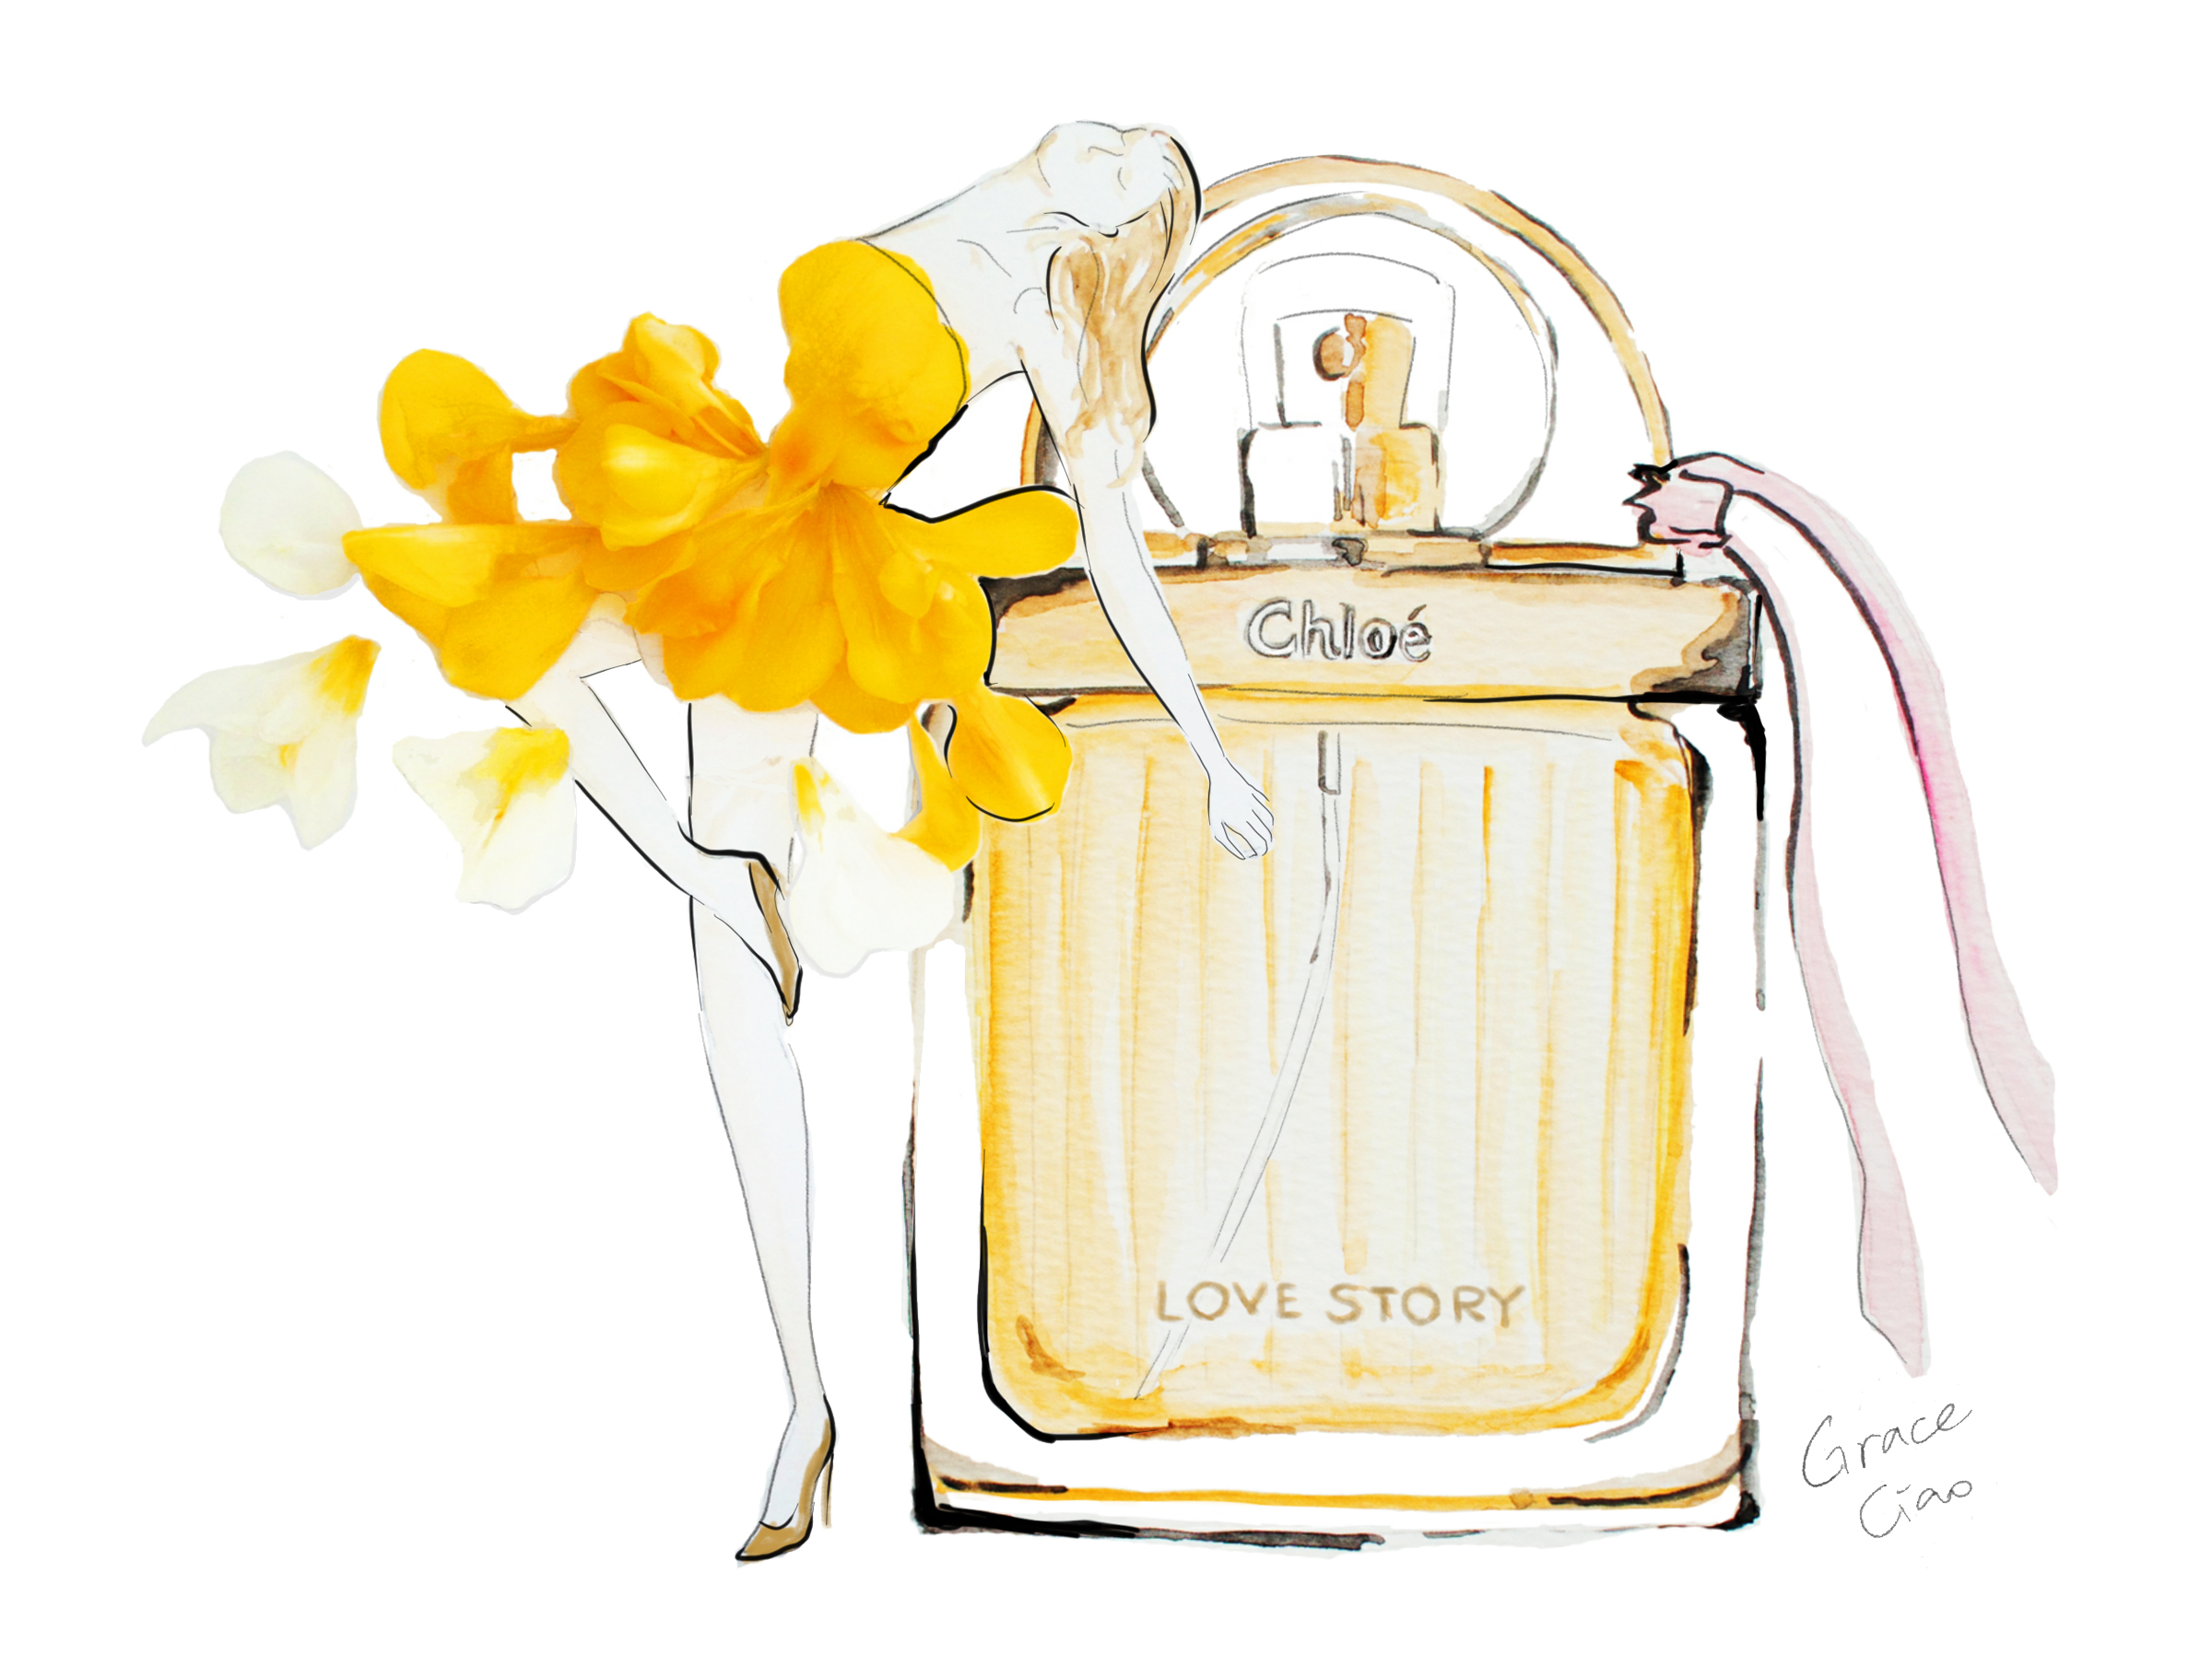 Grace-Ciao-Fashion-Illustrator-Chloe-Love-Story-Saks-Glam-Gardens.jpg